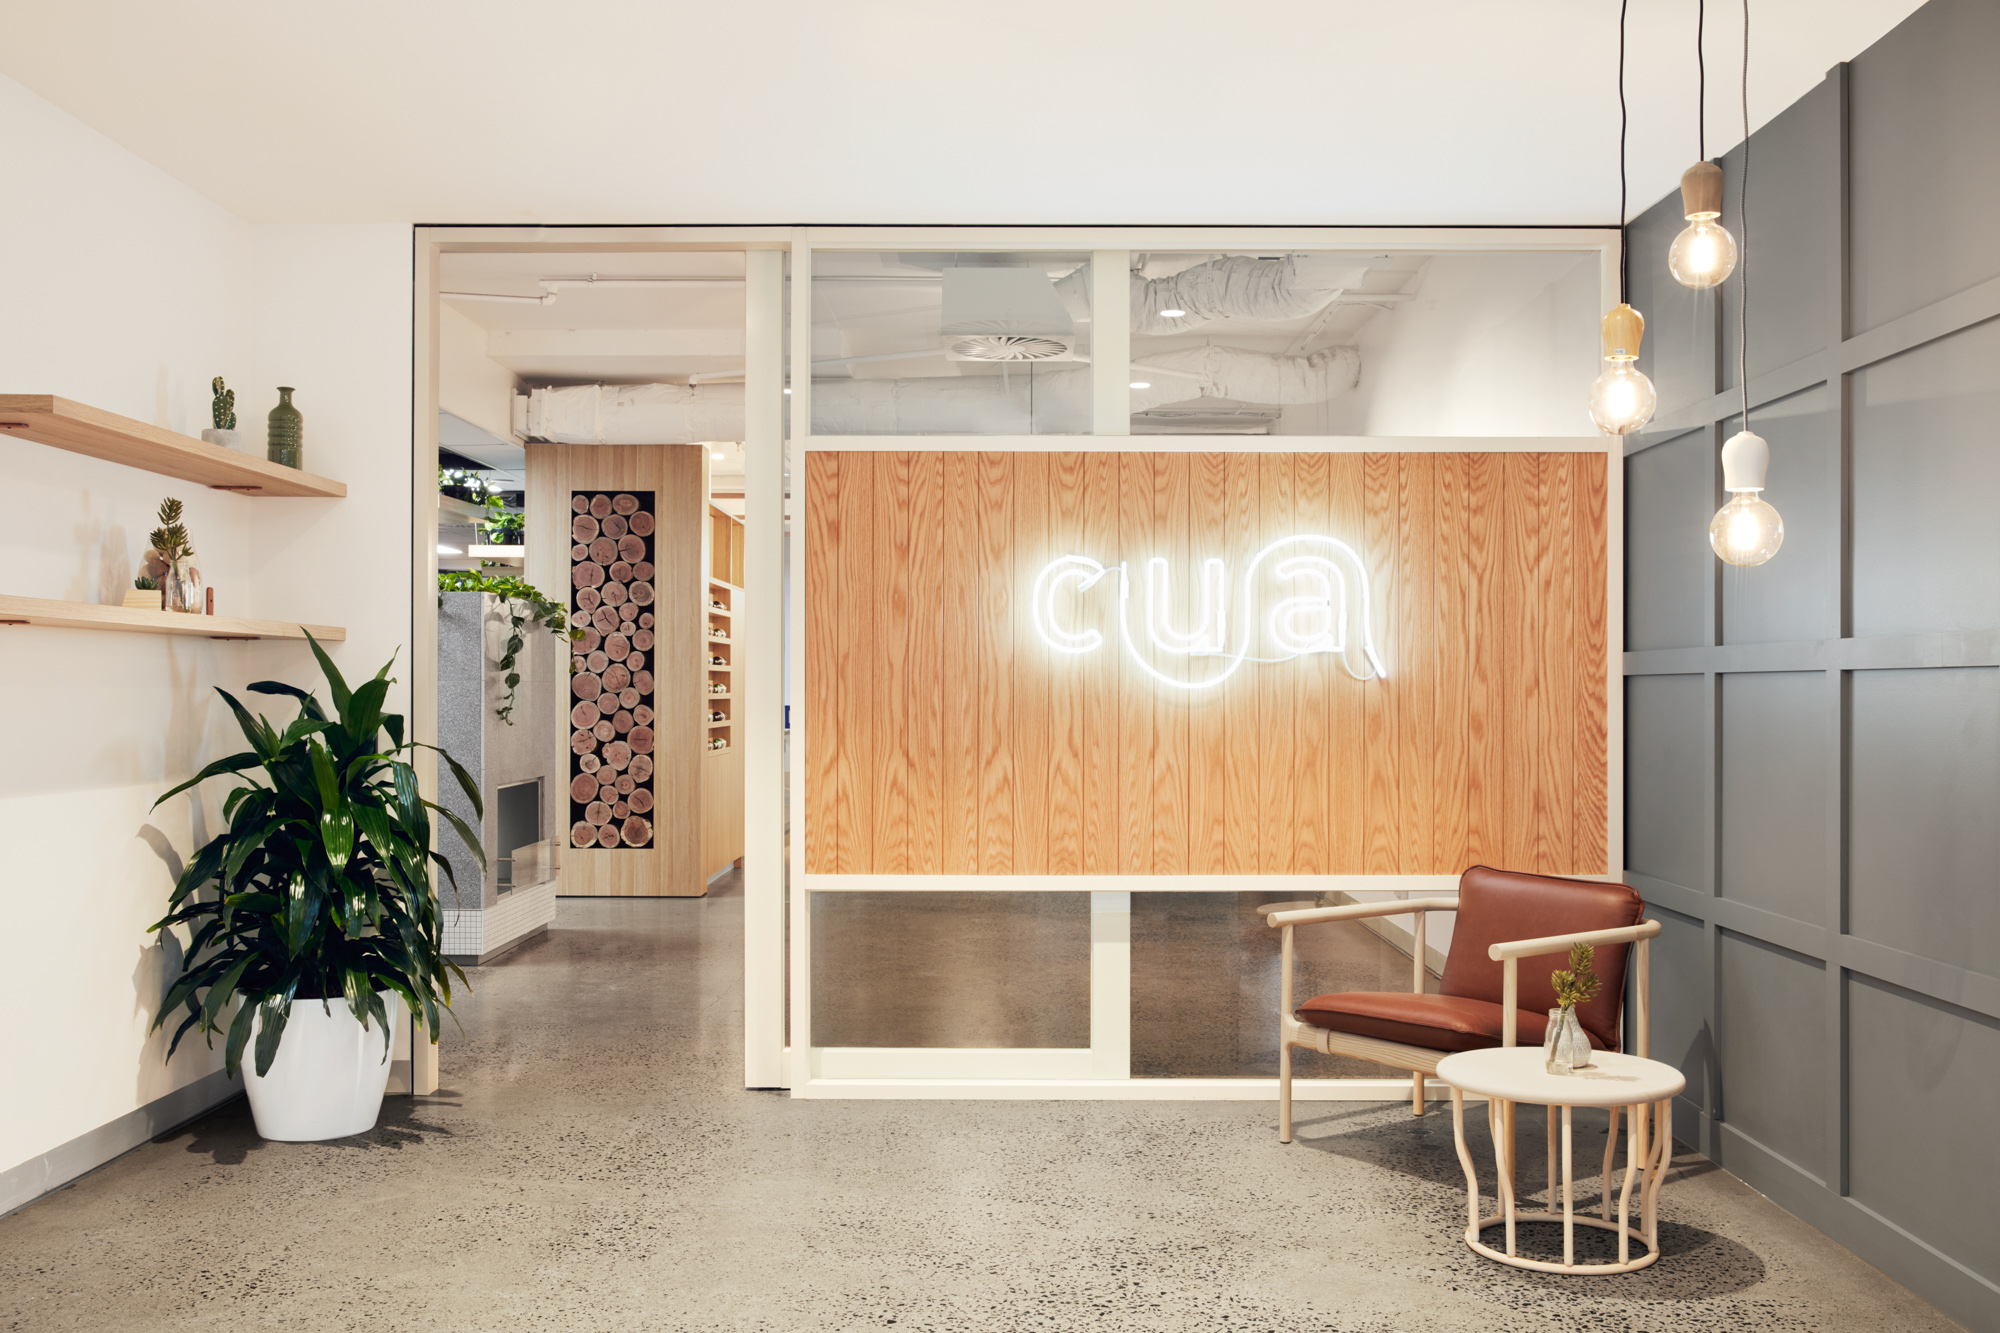 CUA Melbourne by Girvan Waugh in Melbourne, VIC, Australia